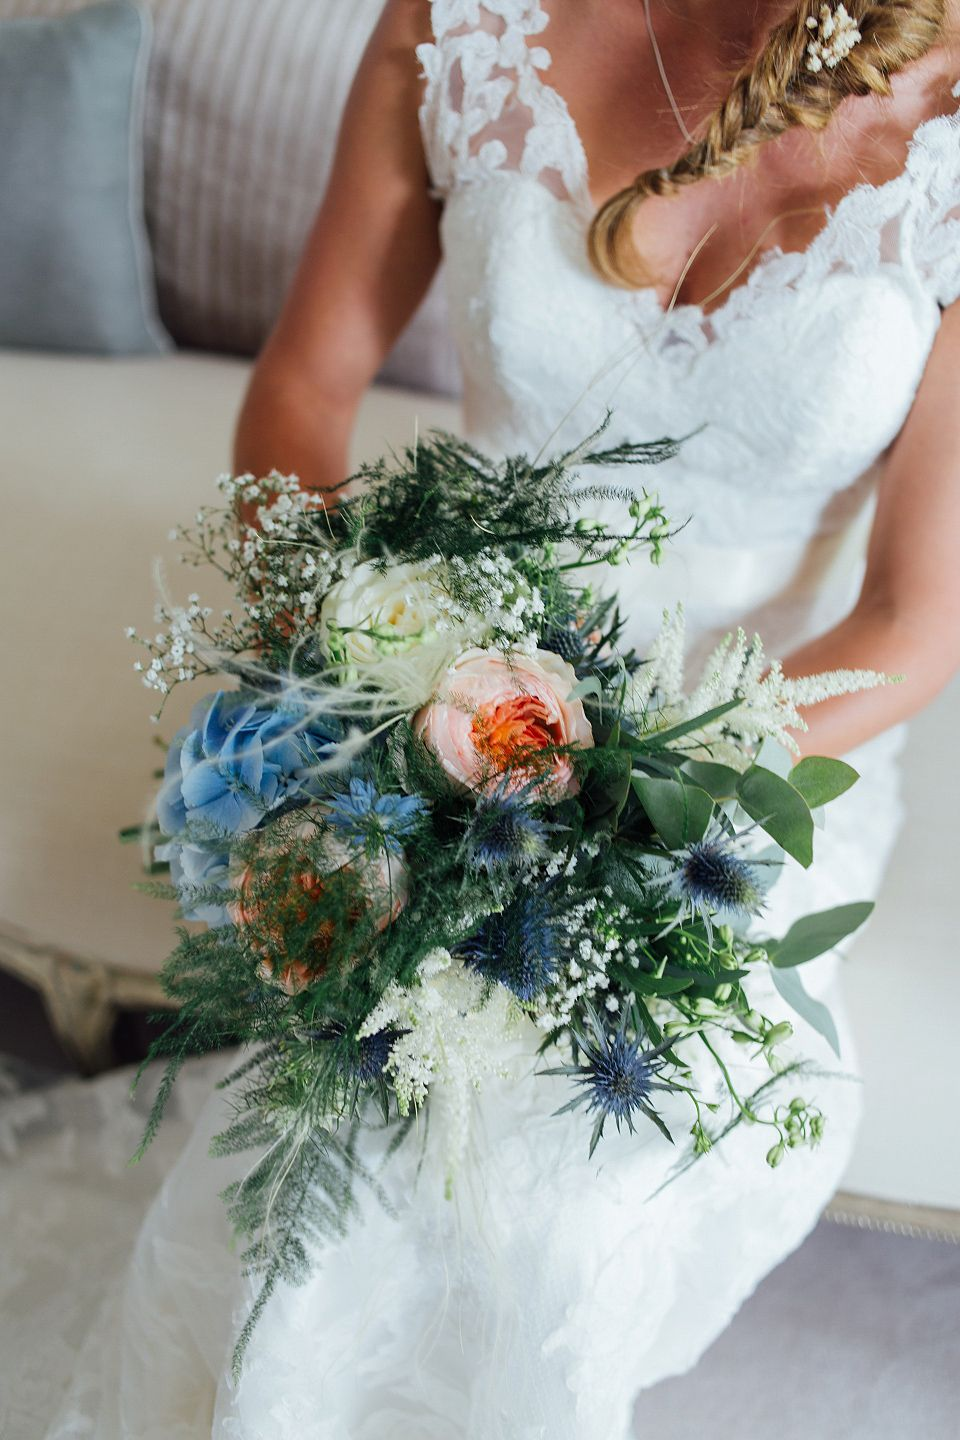 An Essence of Australia Gown and Flowers in her Hair for a